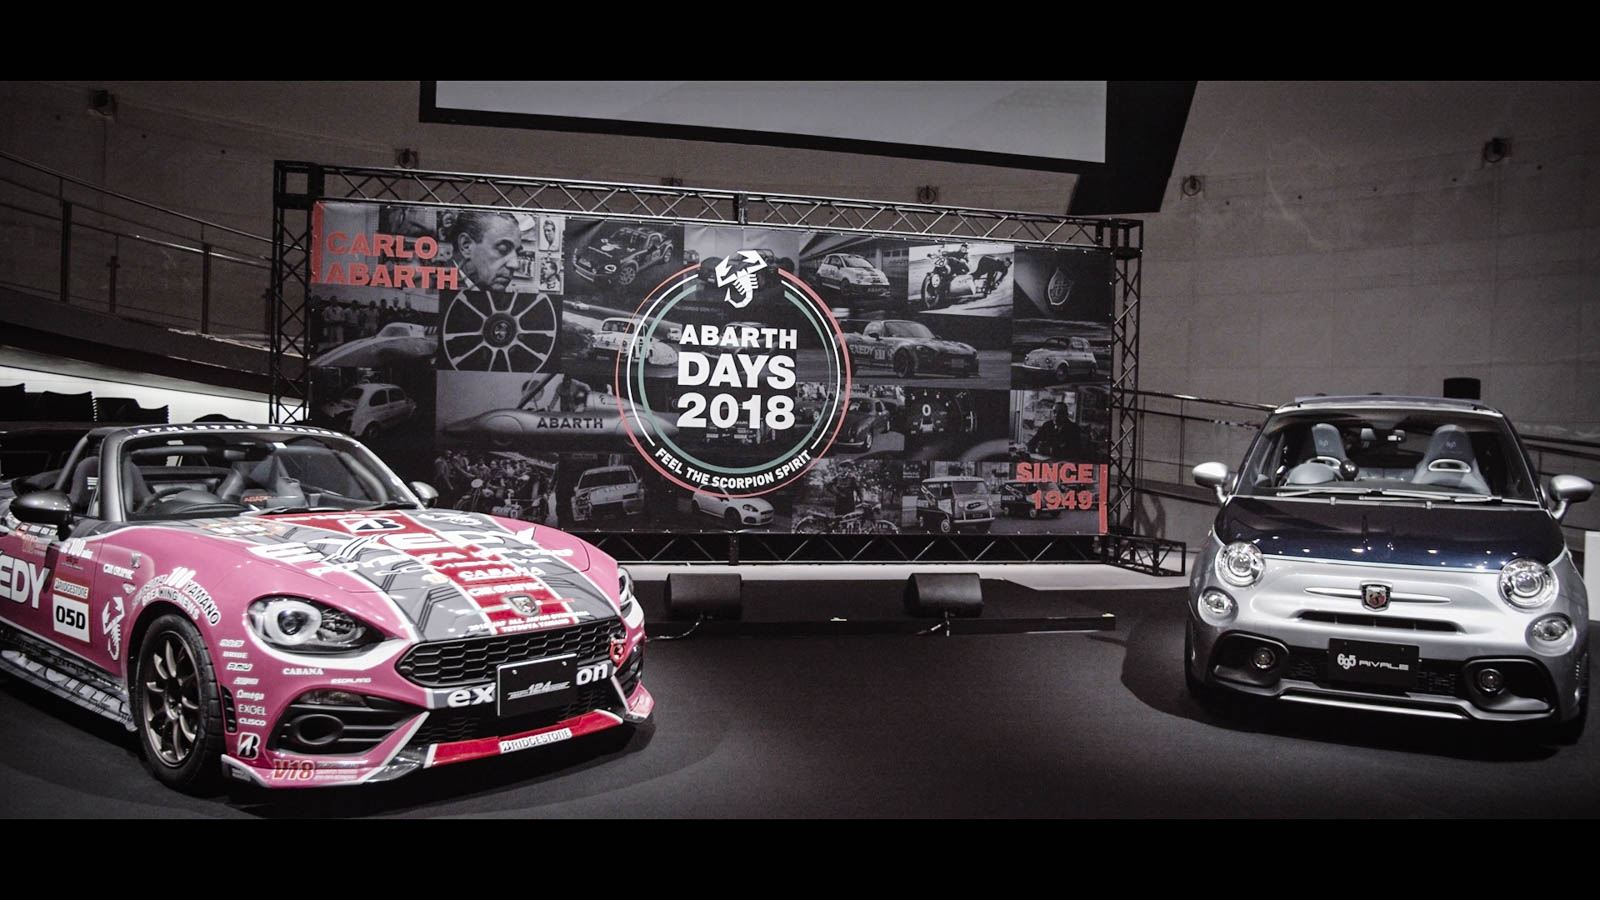 Abarth Days 2018